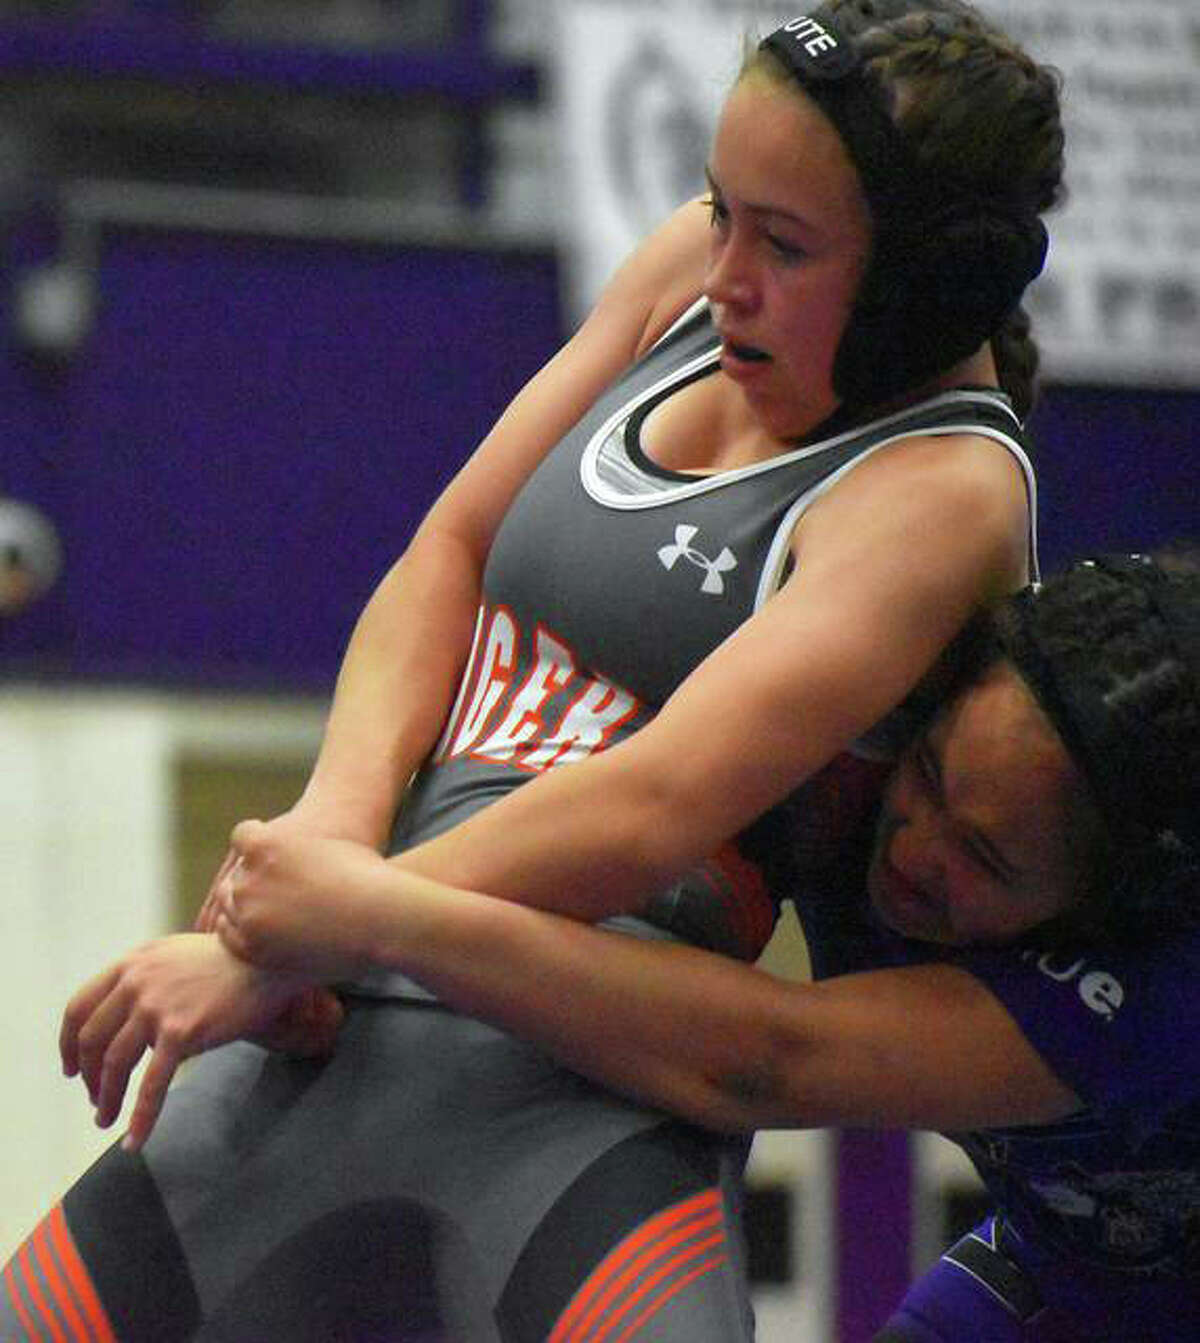 Edwardsville's Olivia Coll tries to break out of a hold early in the second round of her match at 113 pounds against Collinsville on April 29.